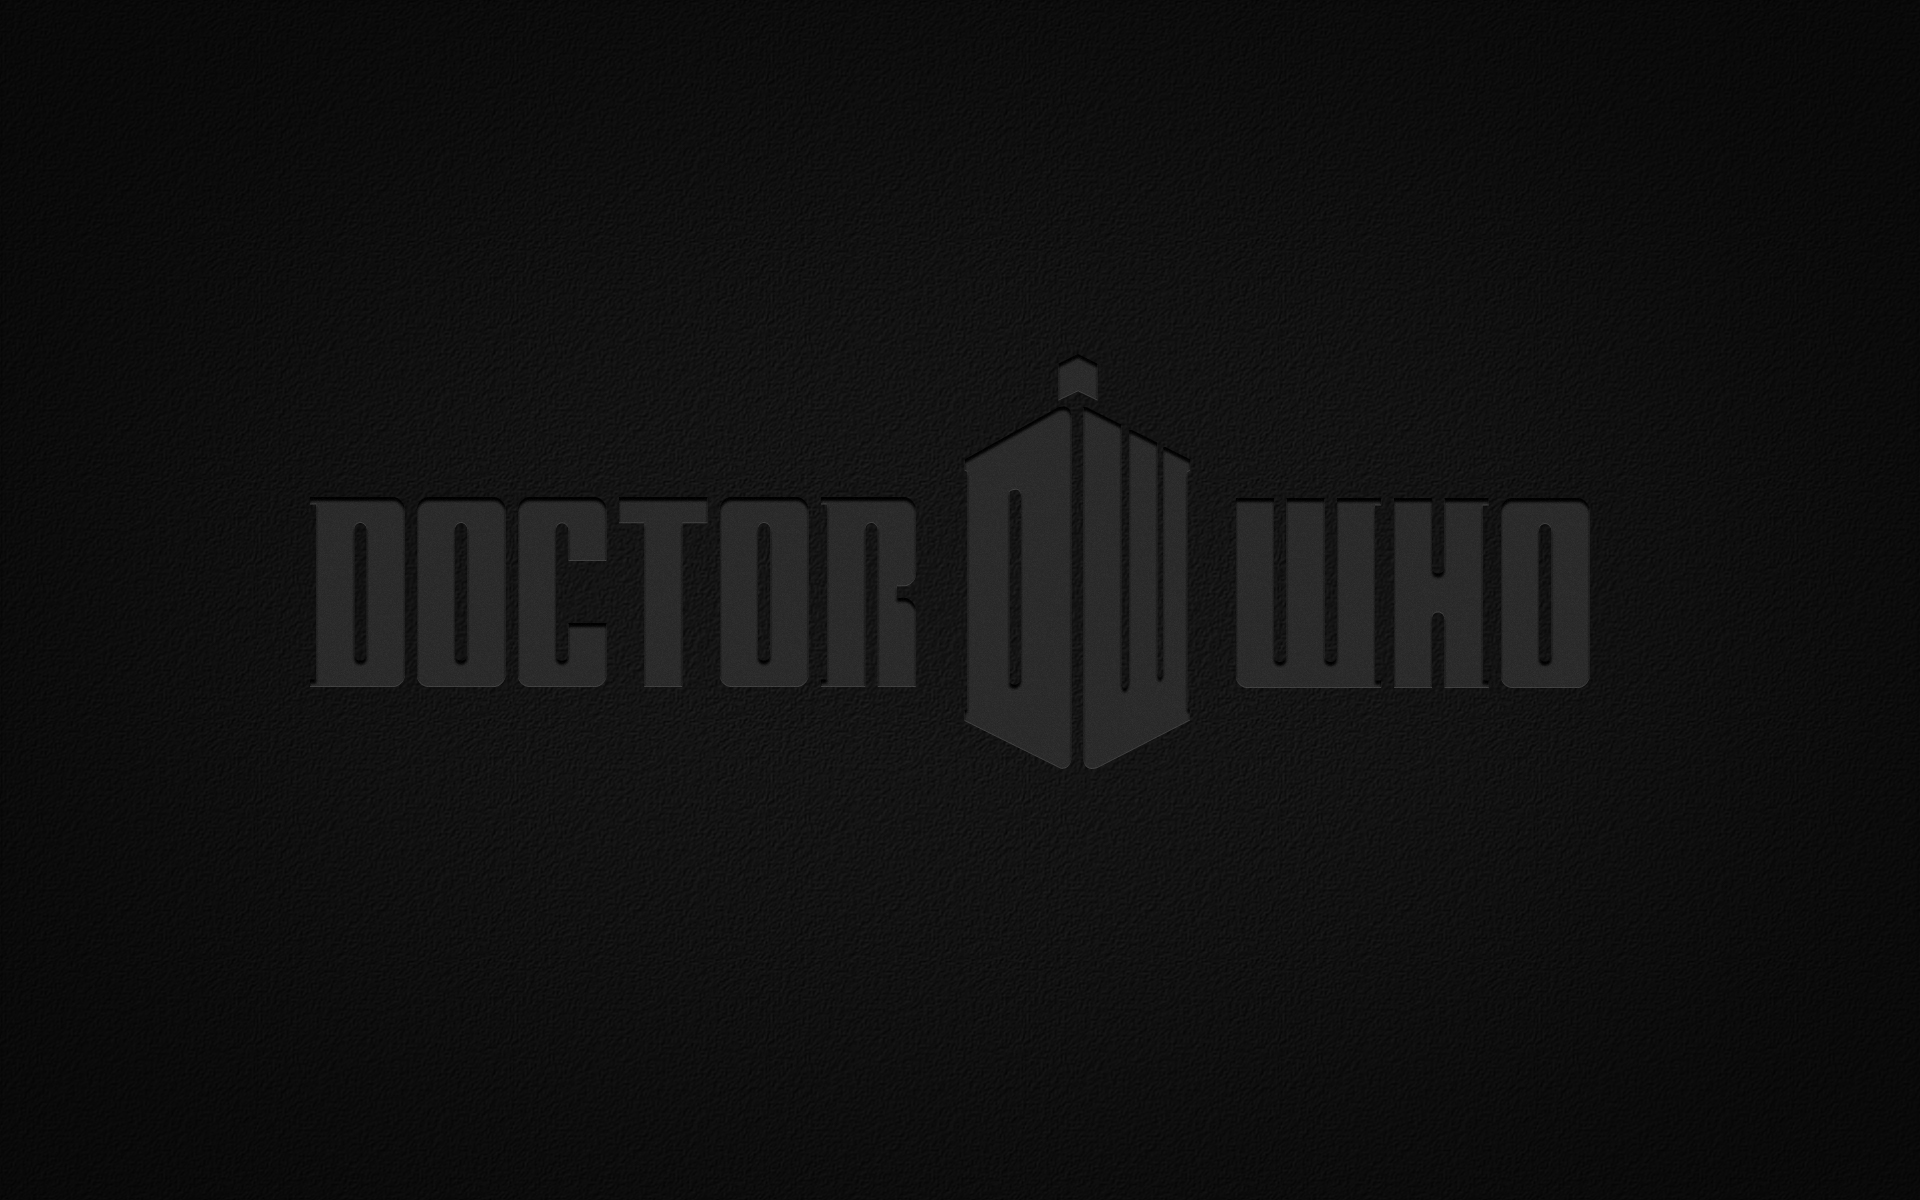 Doctor Who wallpaper 54